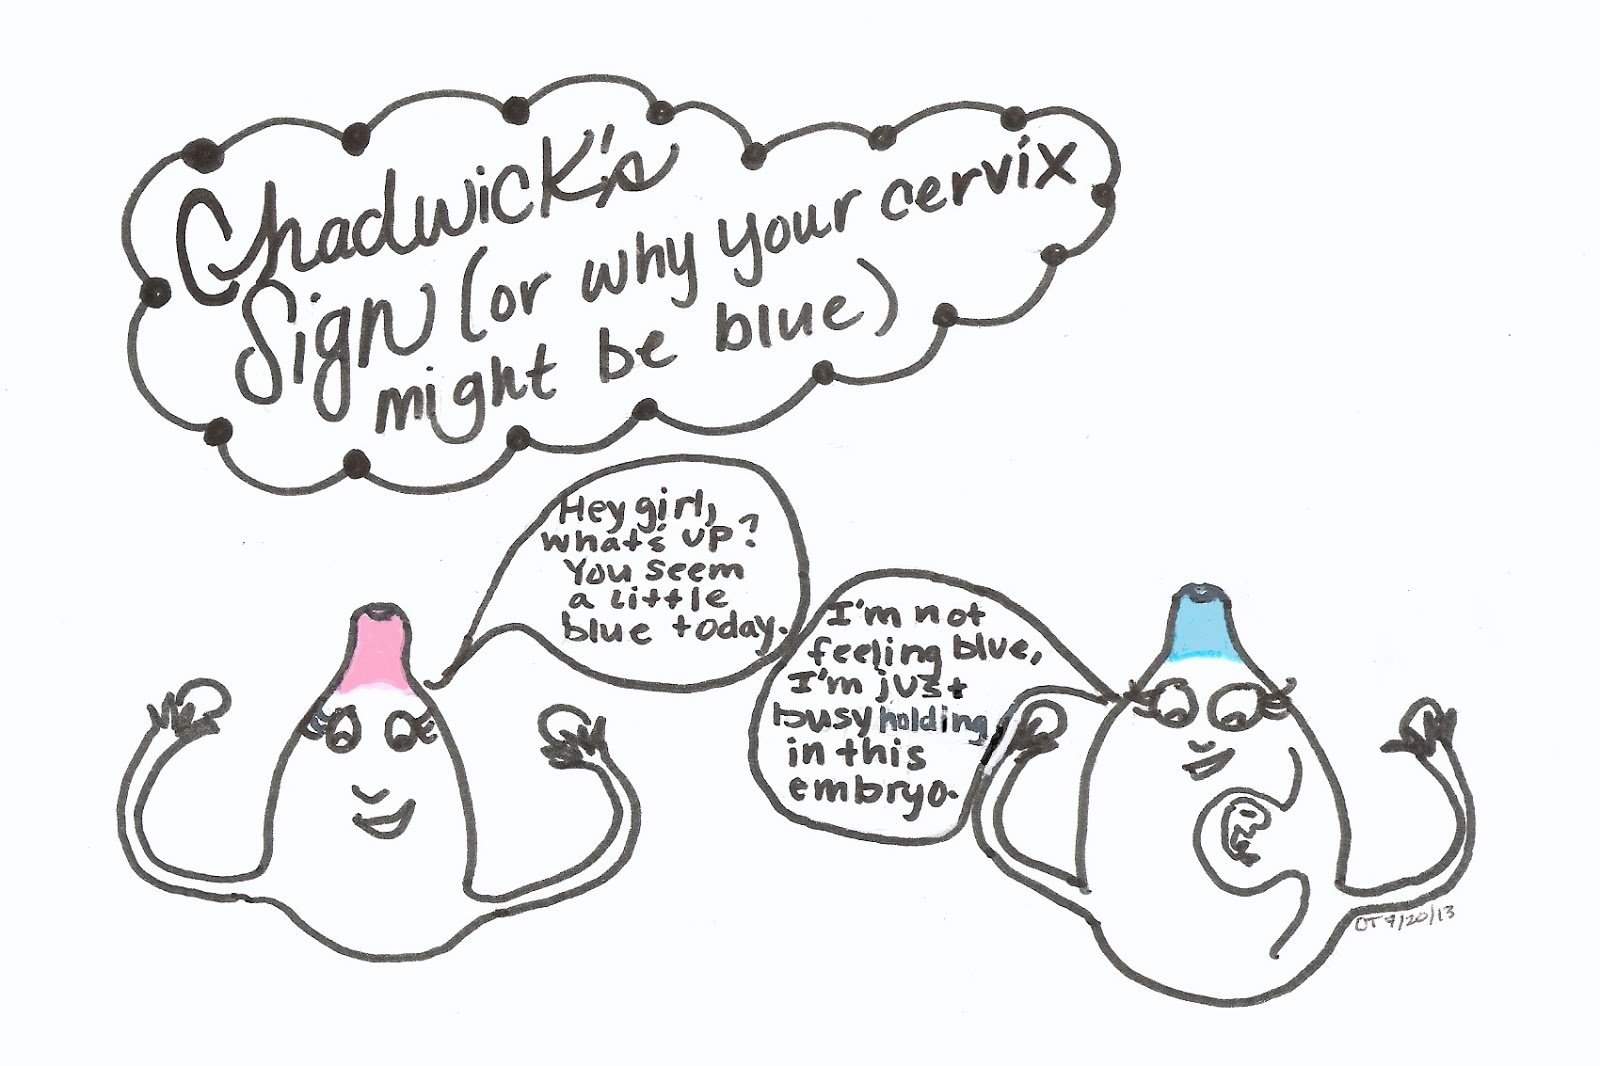 Your Graphic Health Chadwick S Sign Or Why Your Cervix